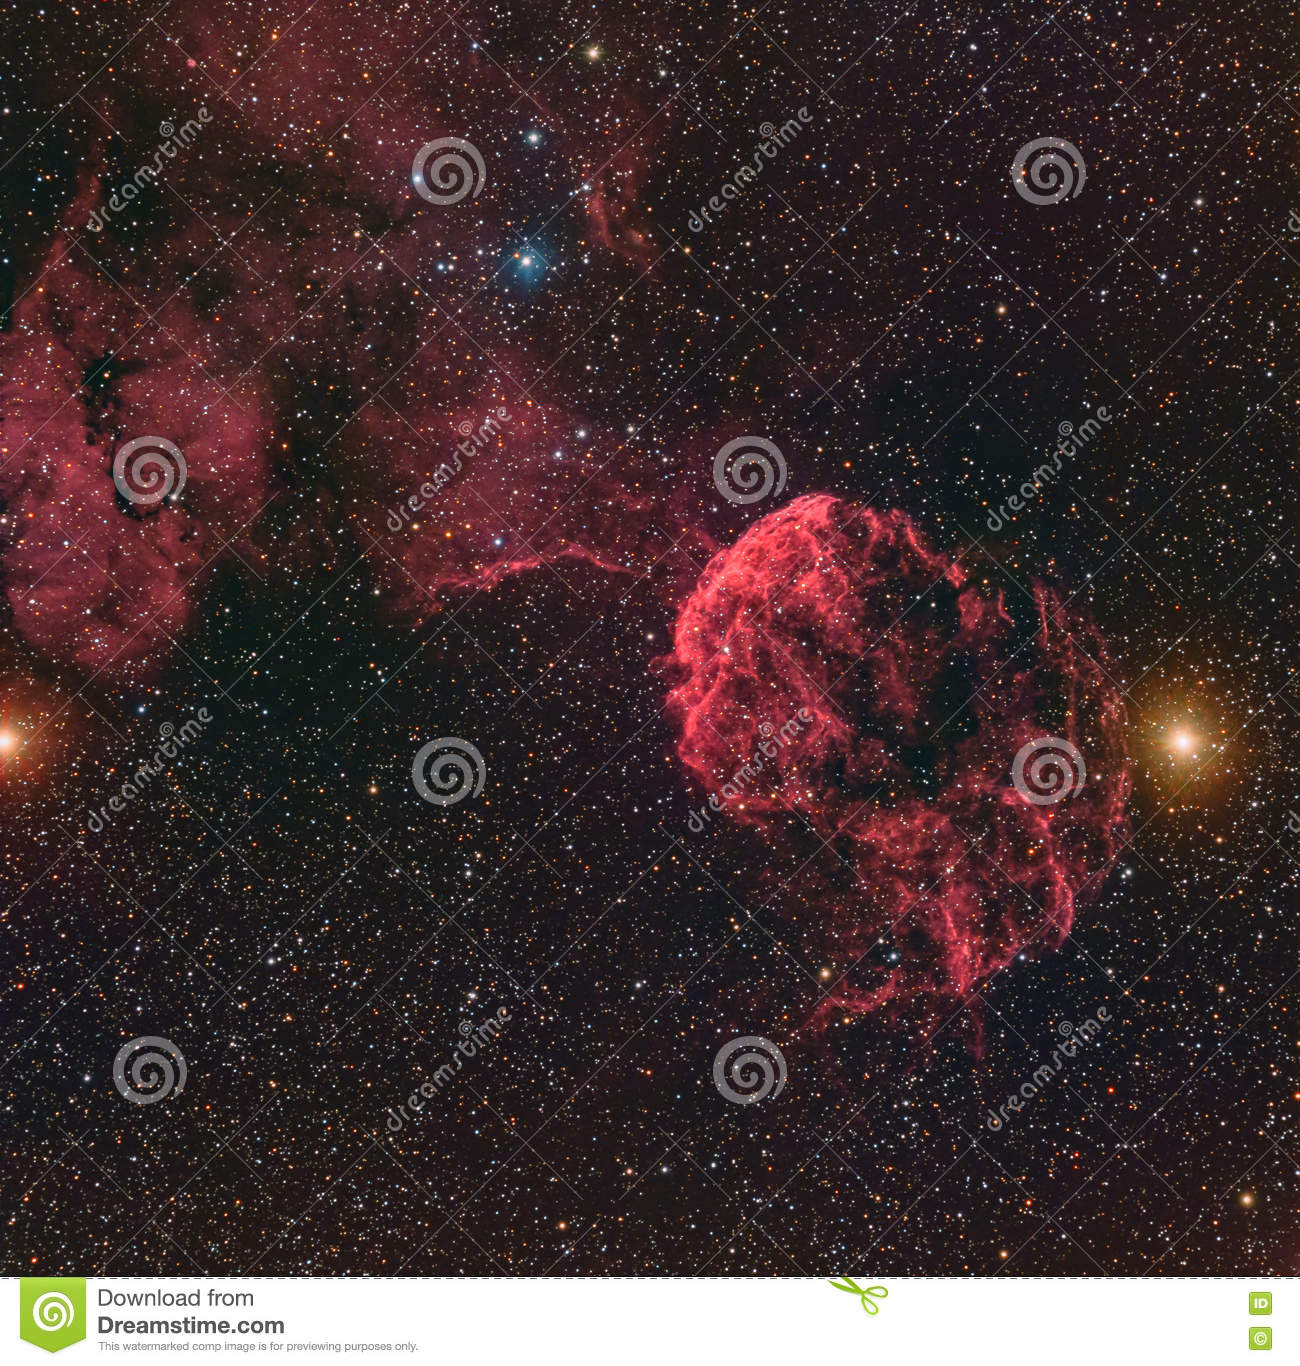 Horsehead Nebula Or Barnard 33 In The Constellation Orion Taken.